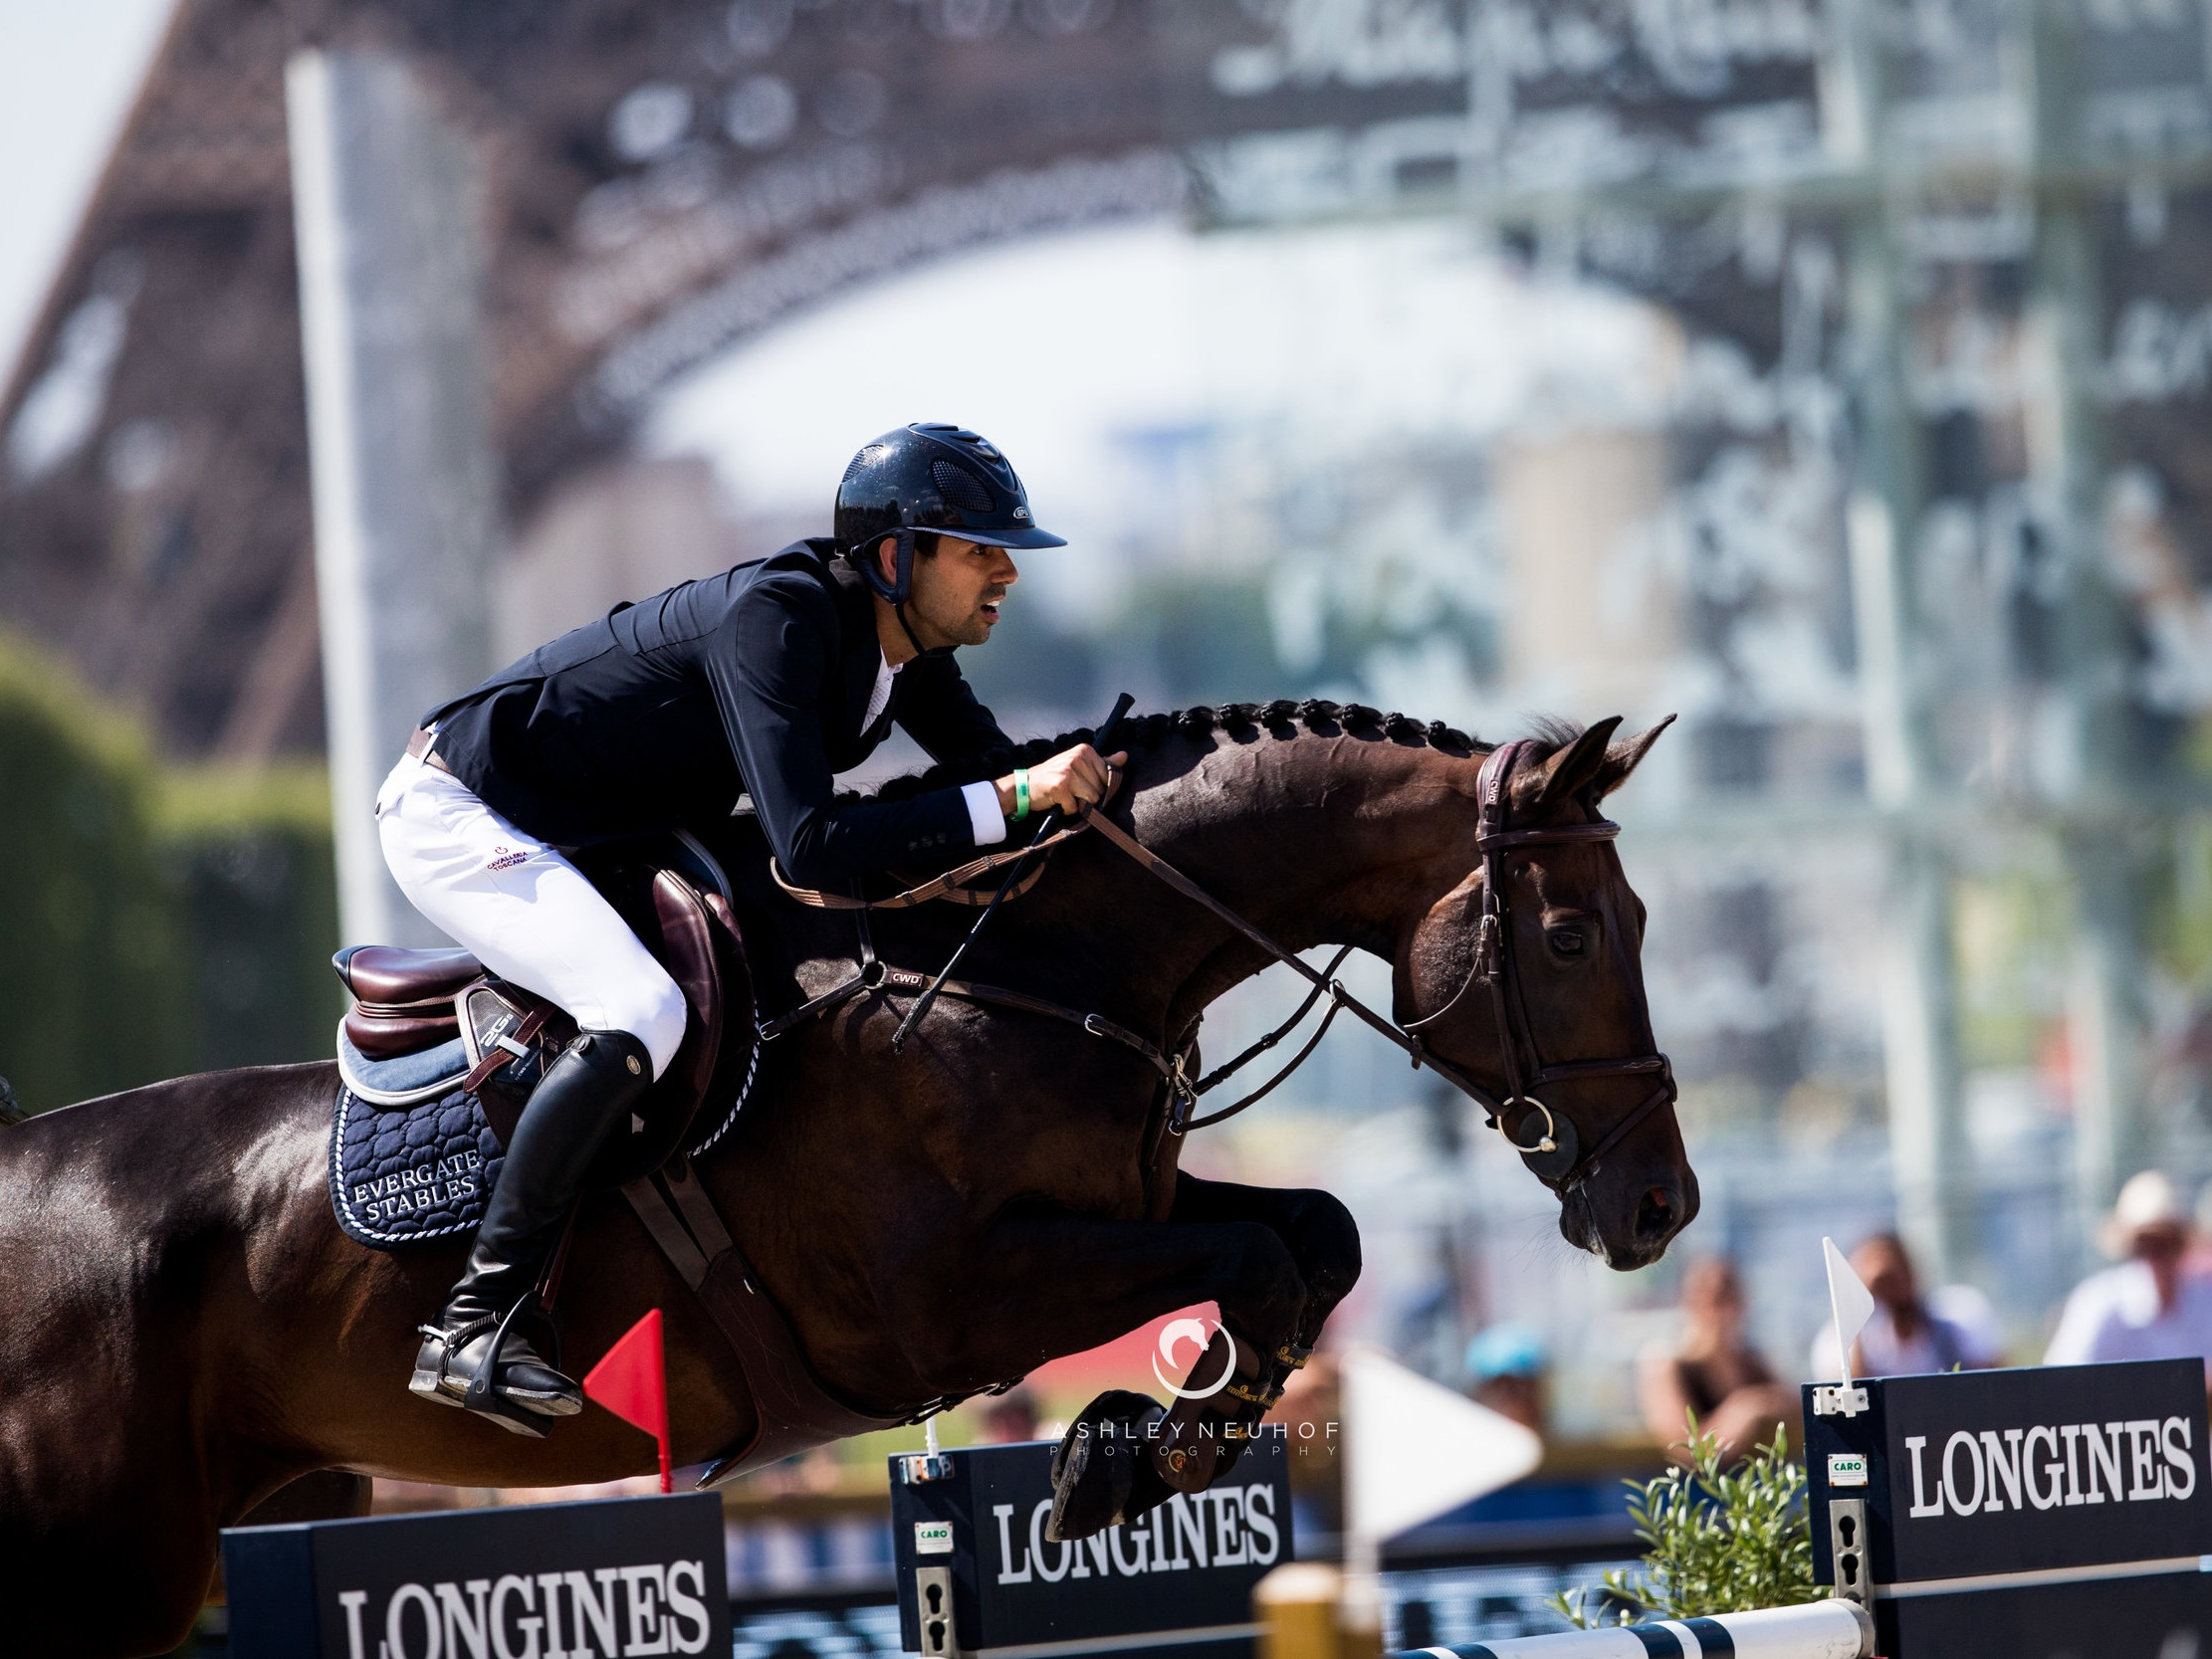 Nayel Nassar and Lucifer V at Longines Global Champions Tour of Paris 2019. Photo by Ashley Neuhof Photography.